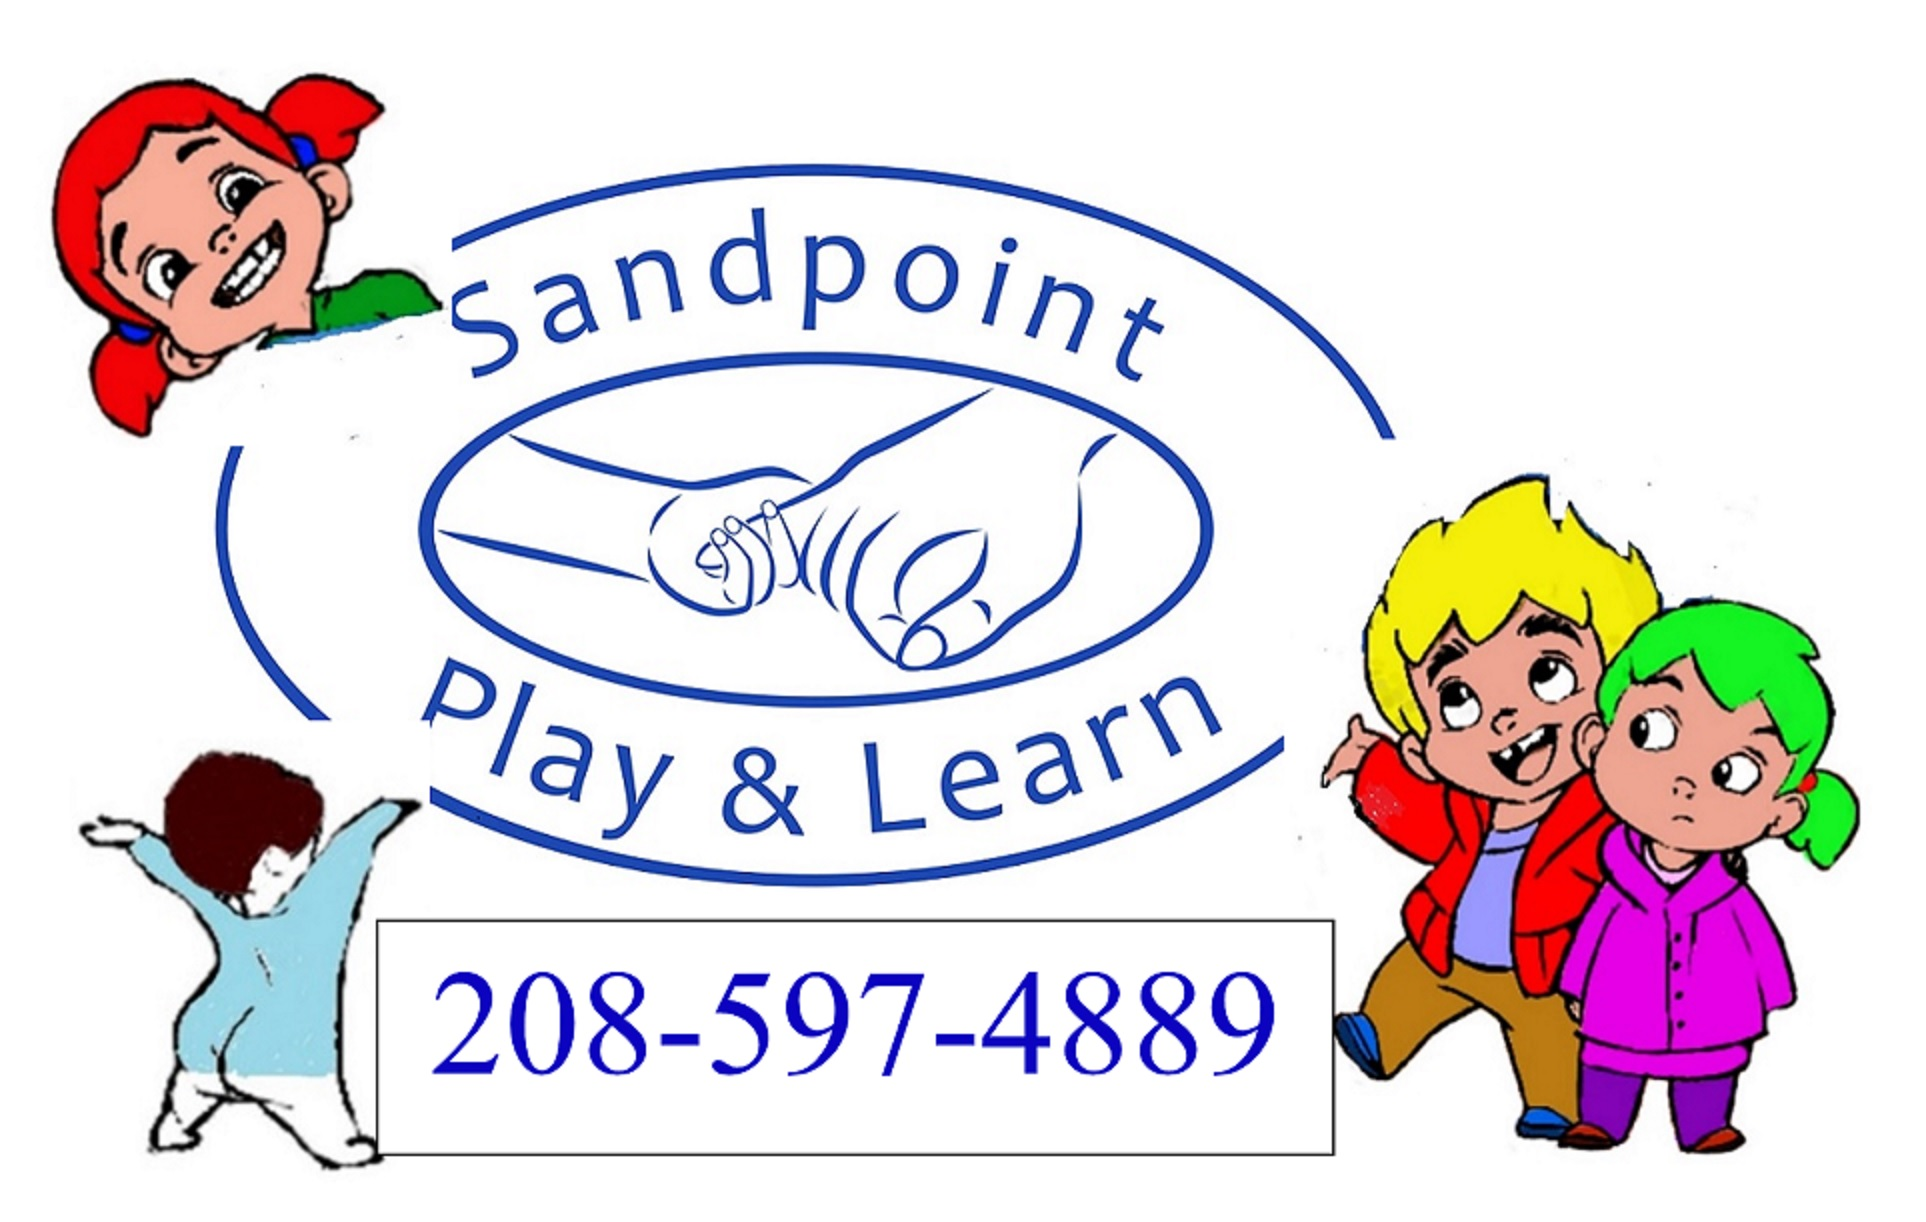 SANDPOINT PLAY AND LEARN DAYCARE CENTER LLC